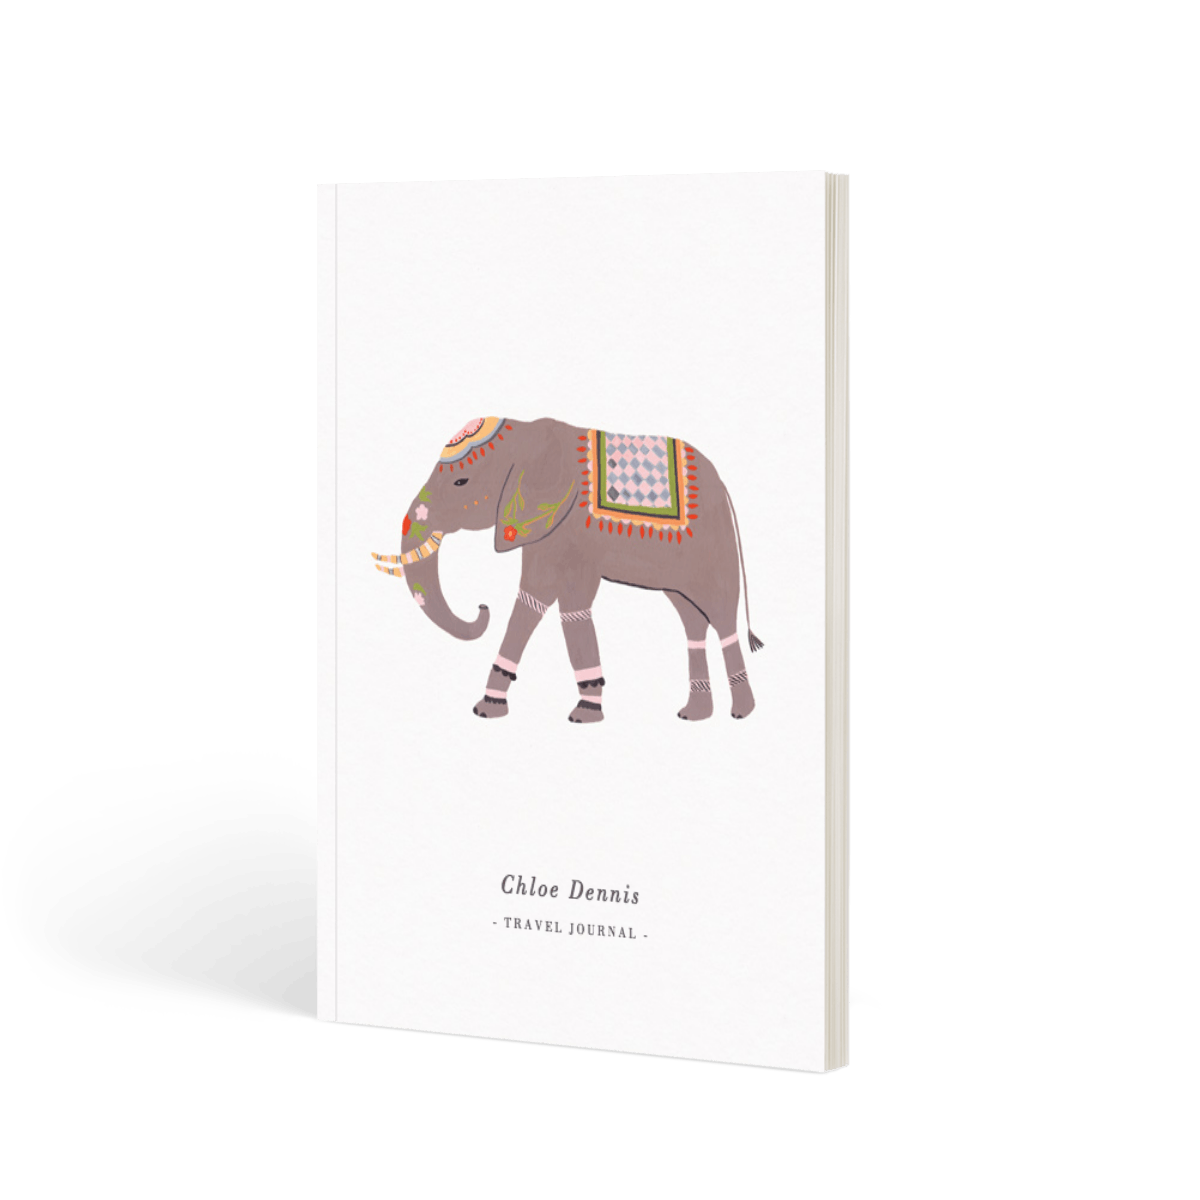 Https%3a%2f%2fwww.papier.com%2fproduct image%2f6253%2f6%2feastern elephant 1607 front 1534500304.png?ixlib=rb 1.1